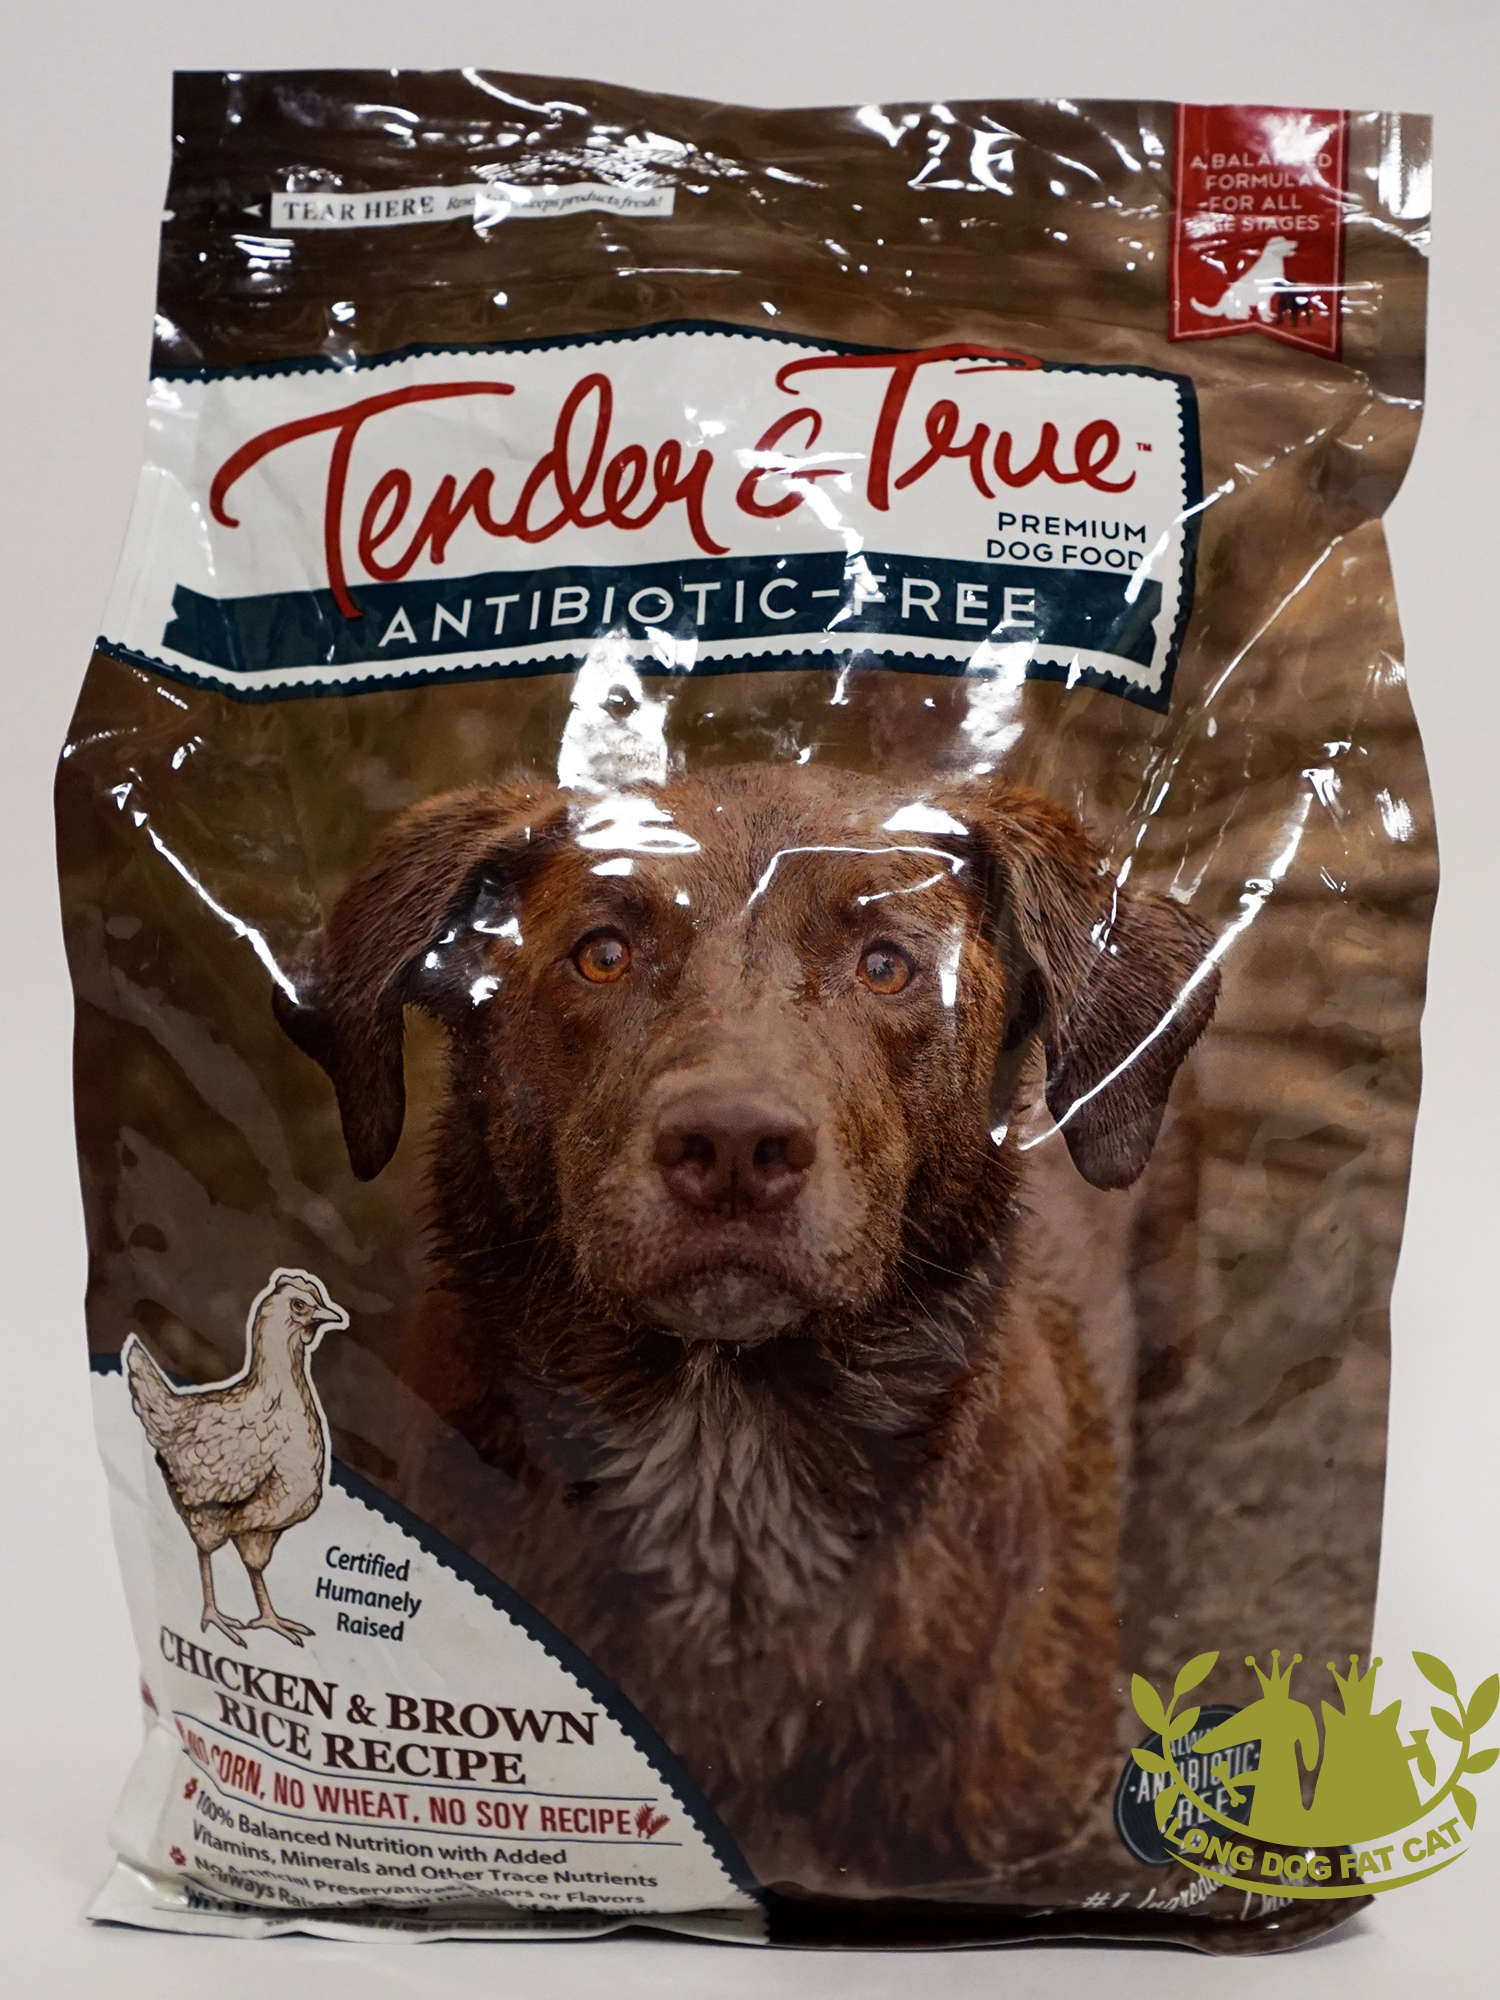 Tender and true organic chicken and brown rice dog food long dog tender and true organic chicken and brown rice dog food forumfinder Choice Image